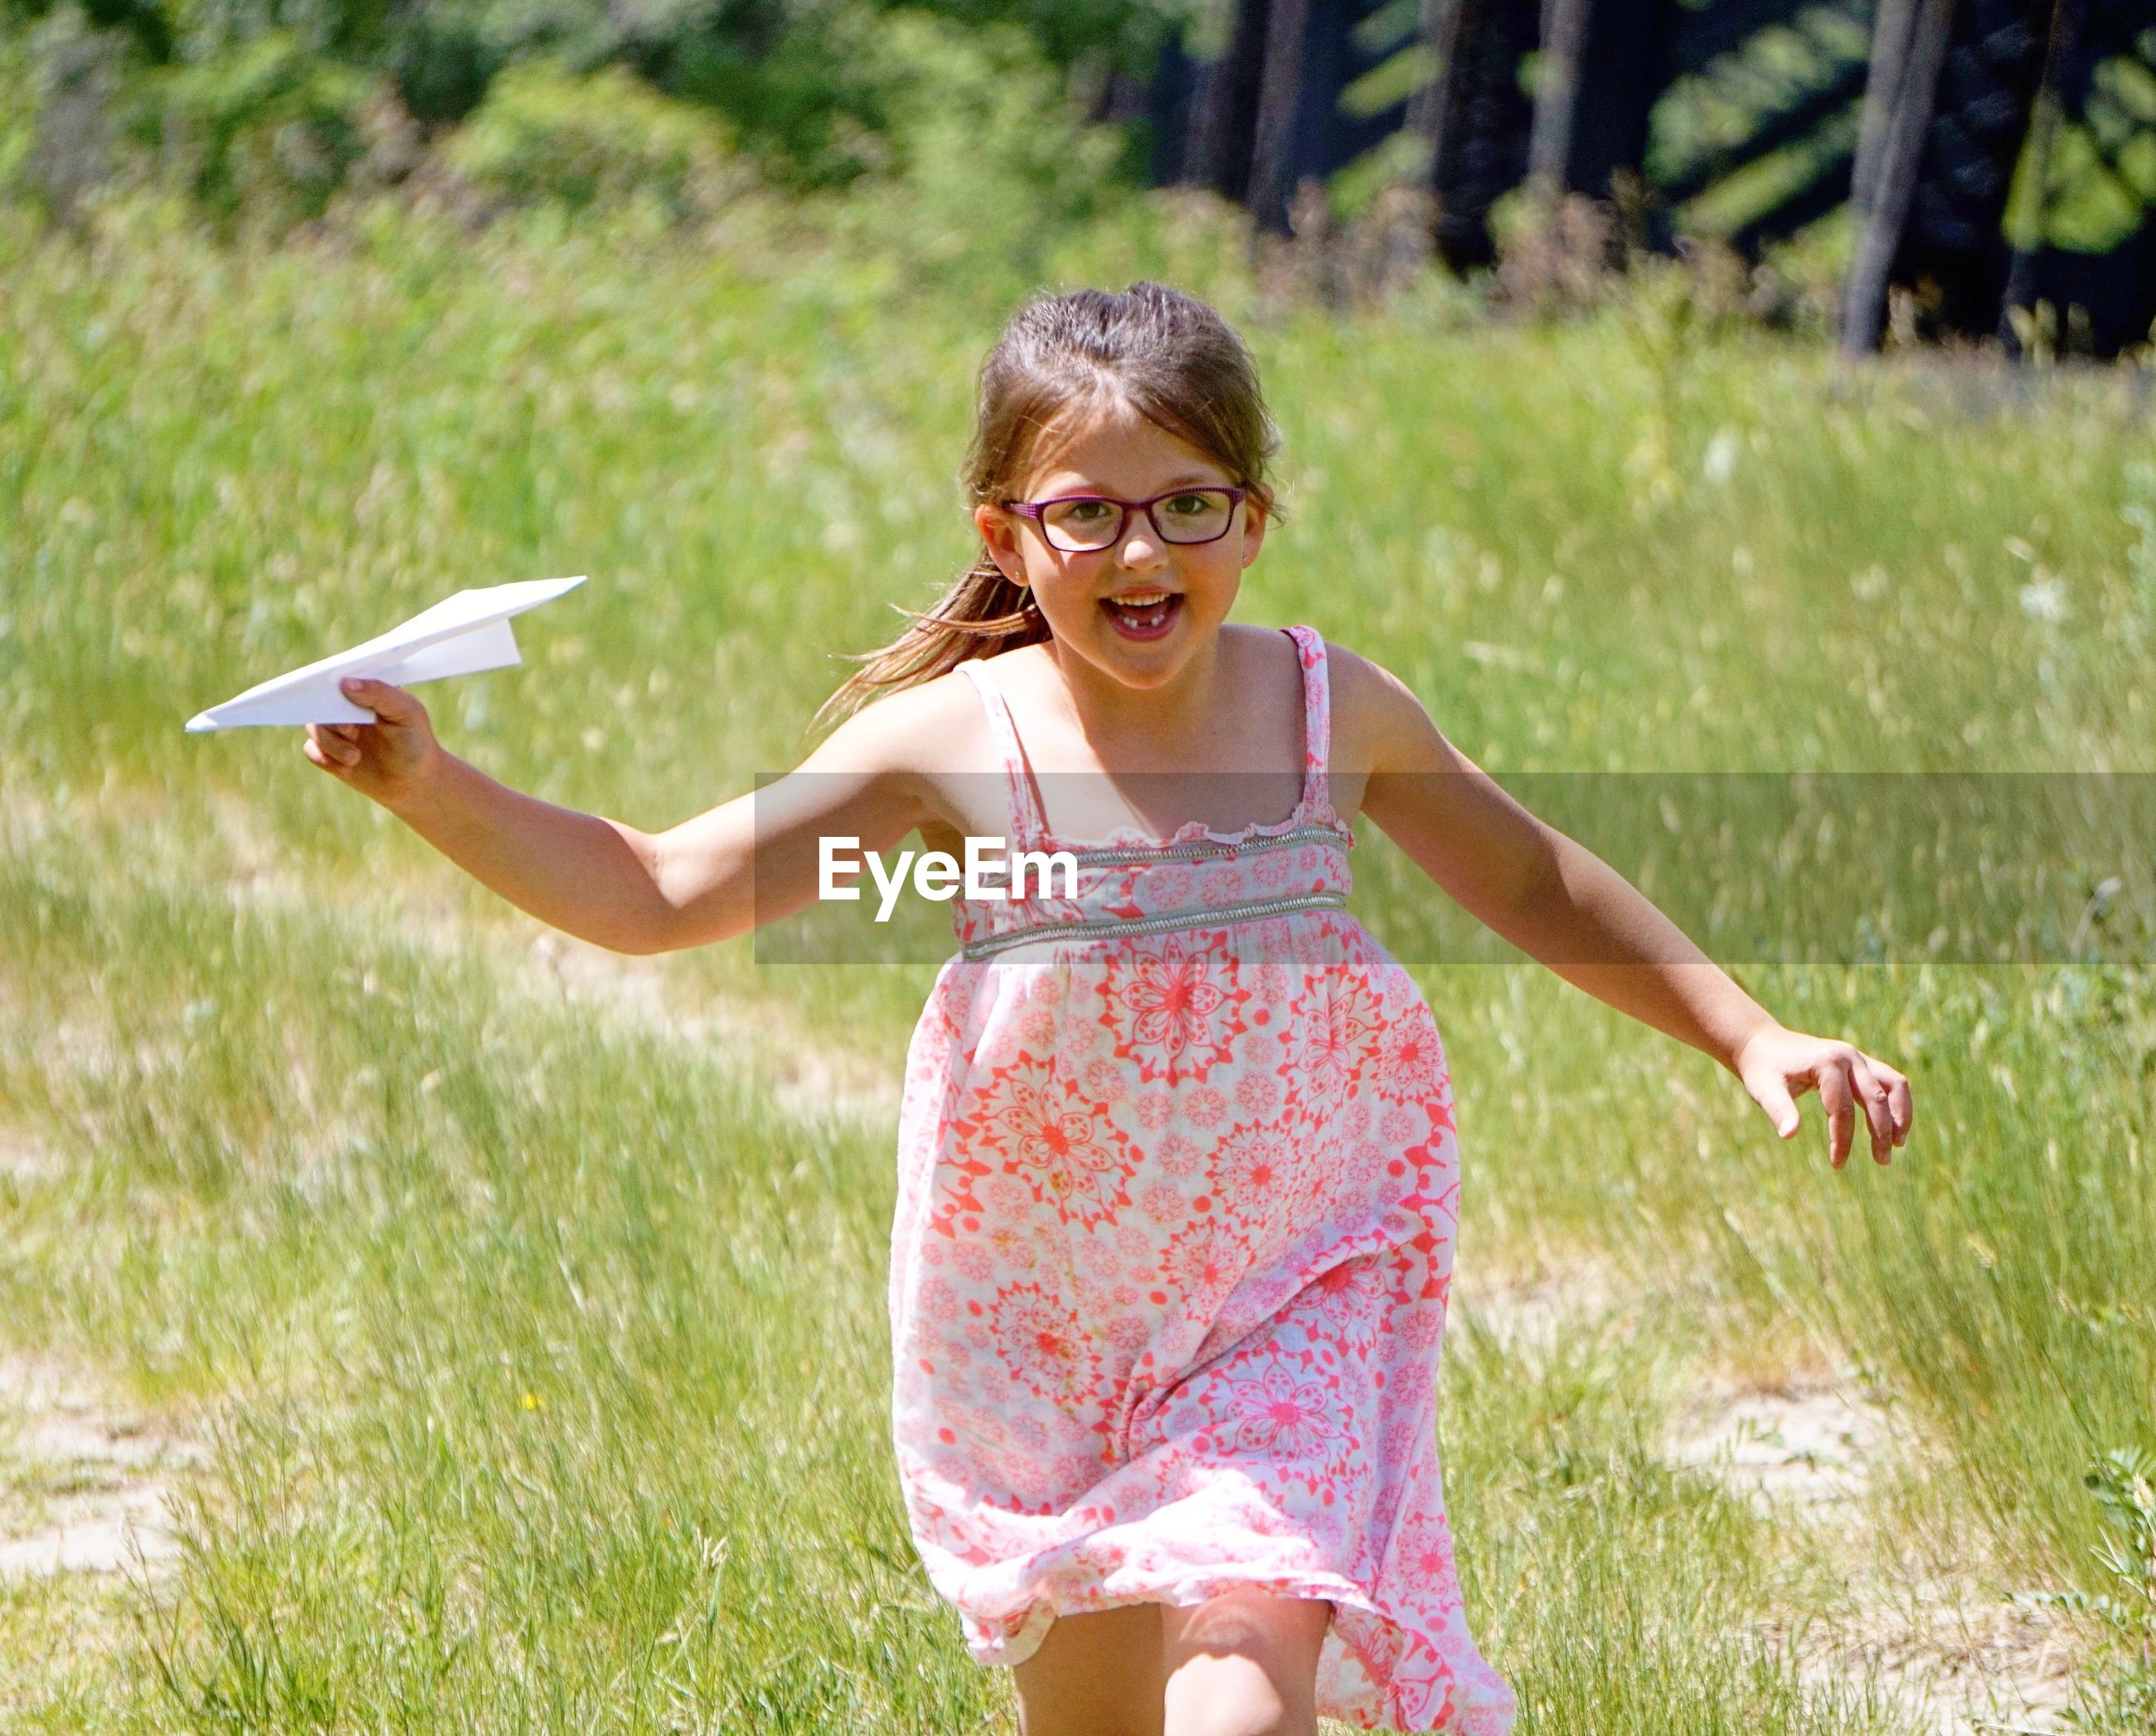 Cheerful girl flying airplane while walking on field during sunny day